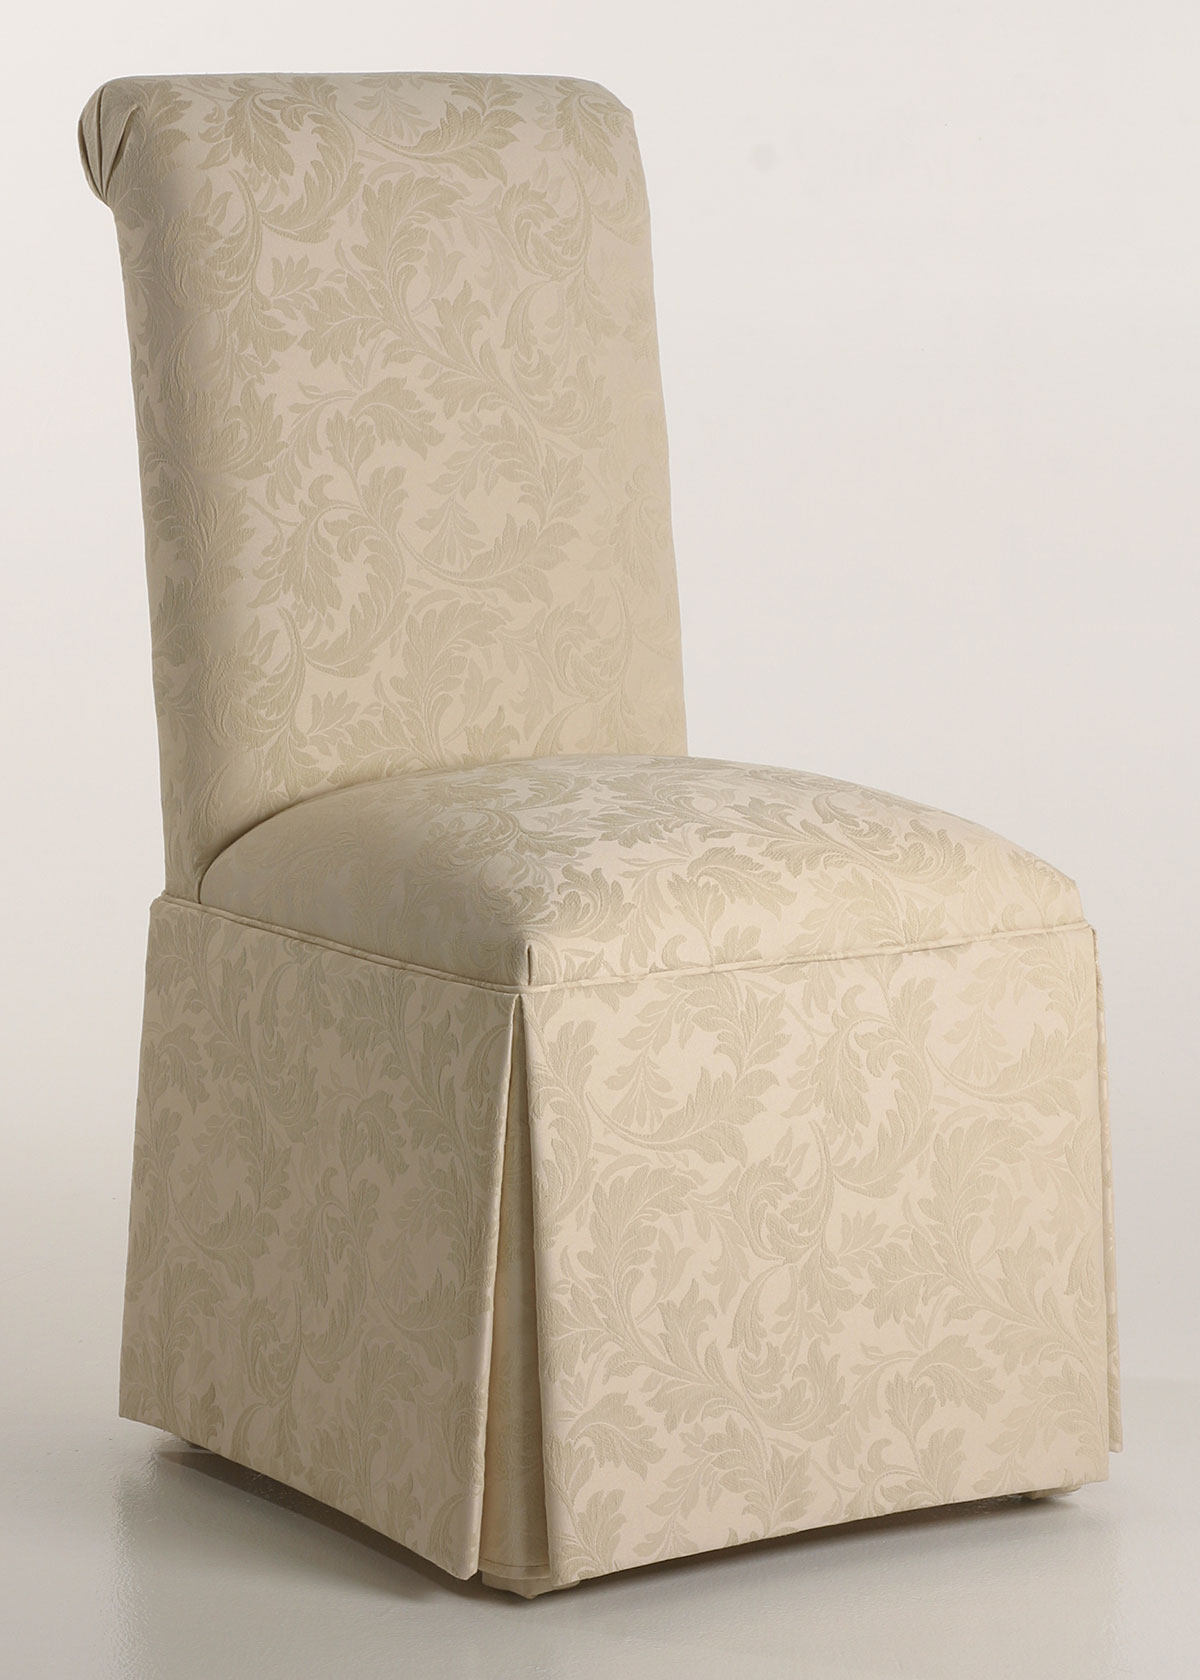 Scroll Back Parson Chair With Kick Pleat Skirt